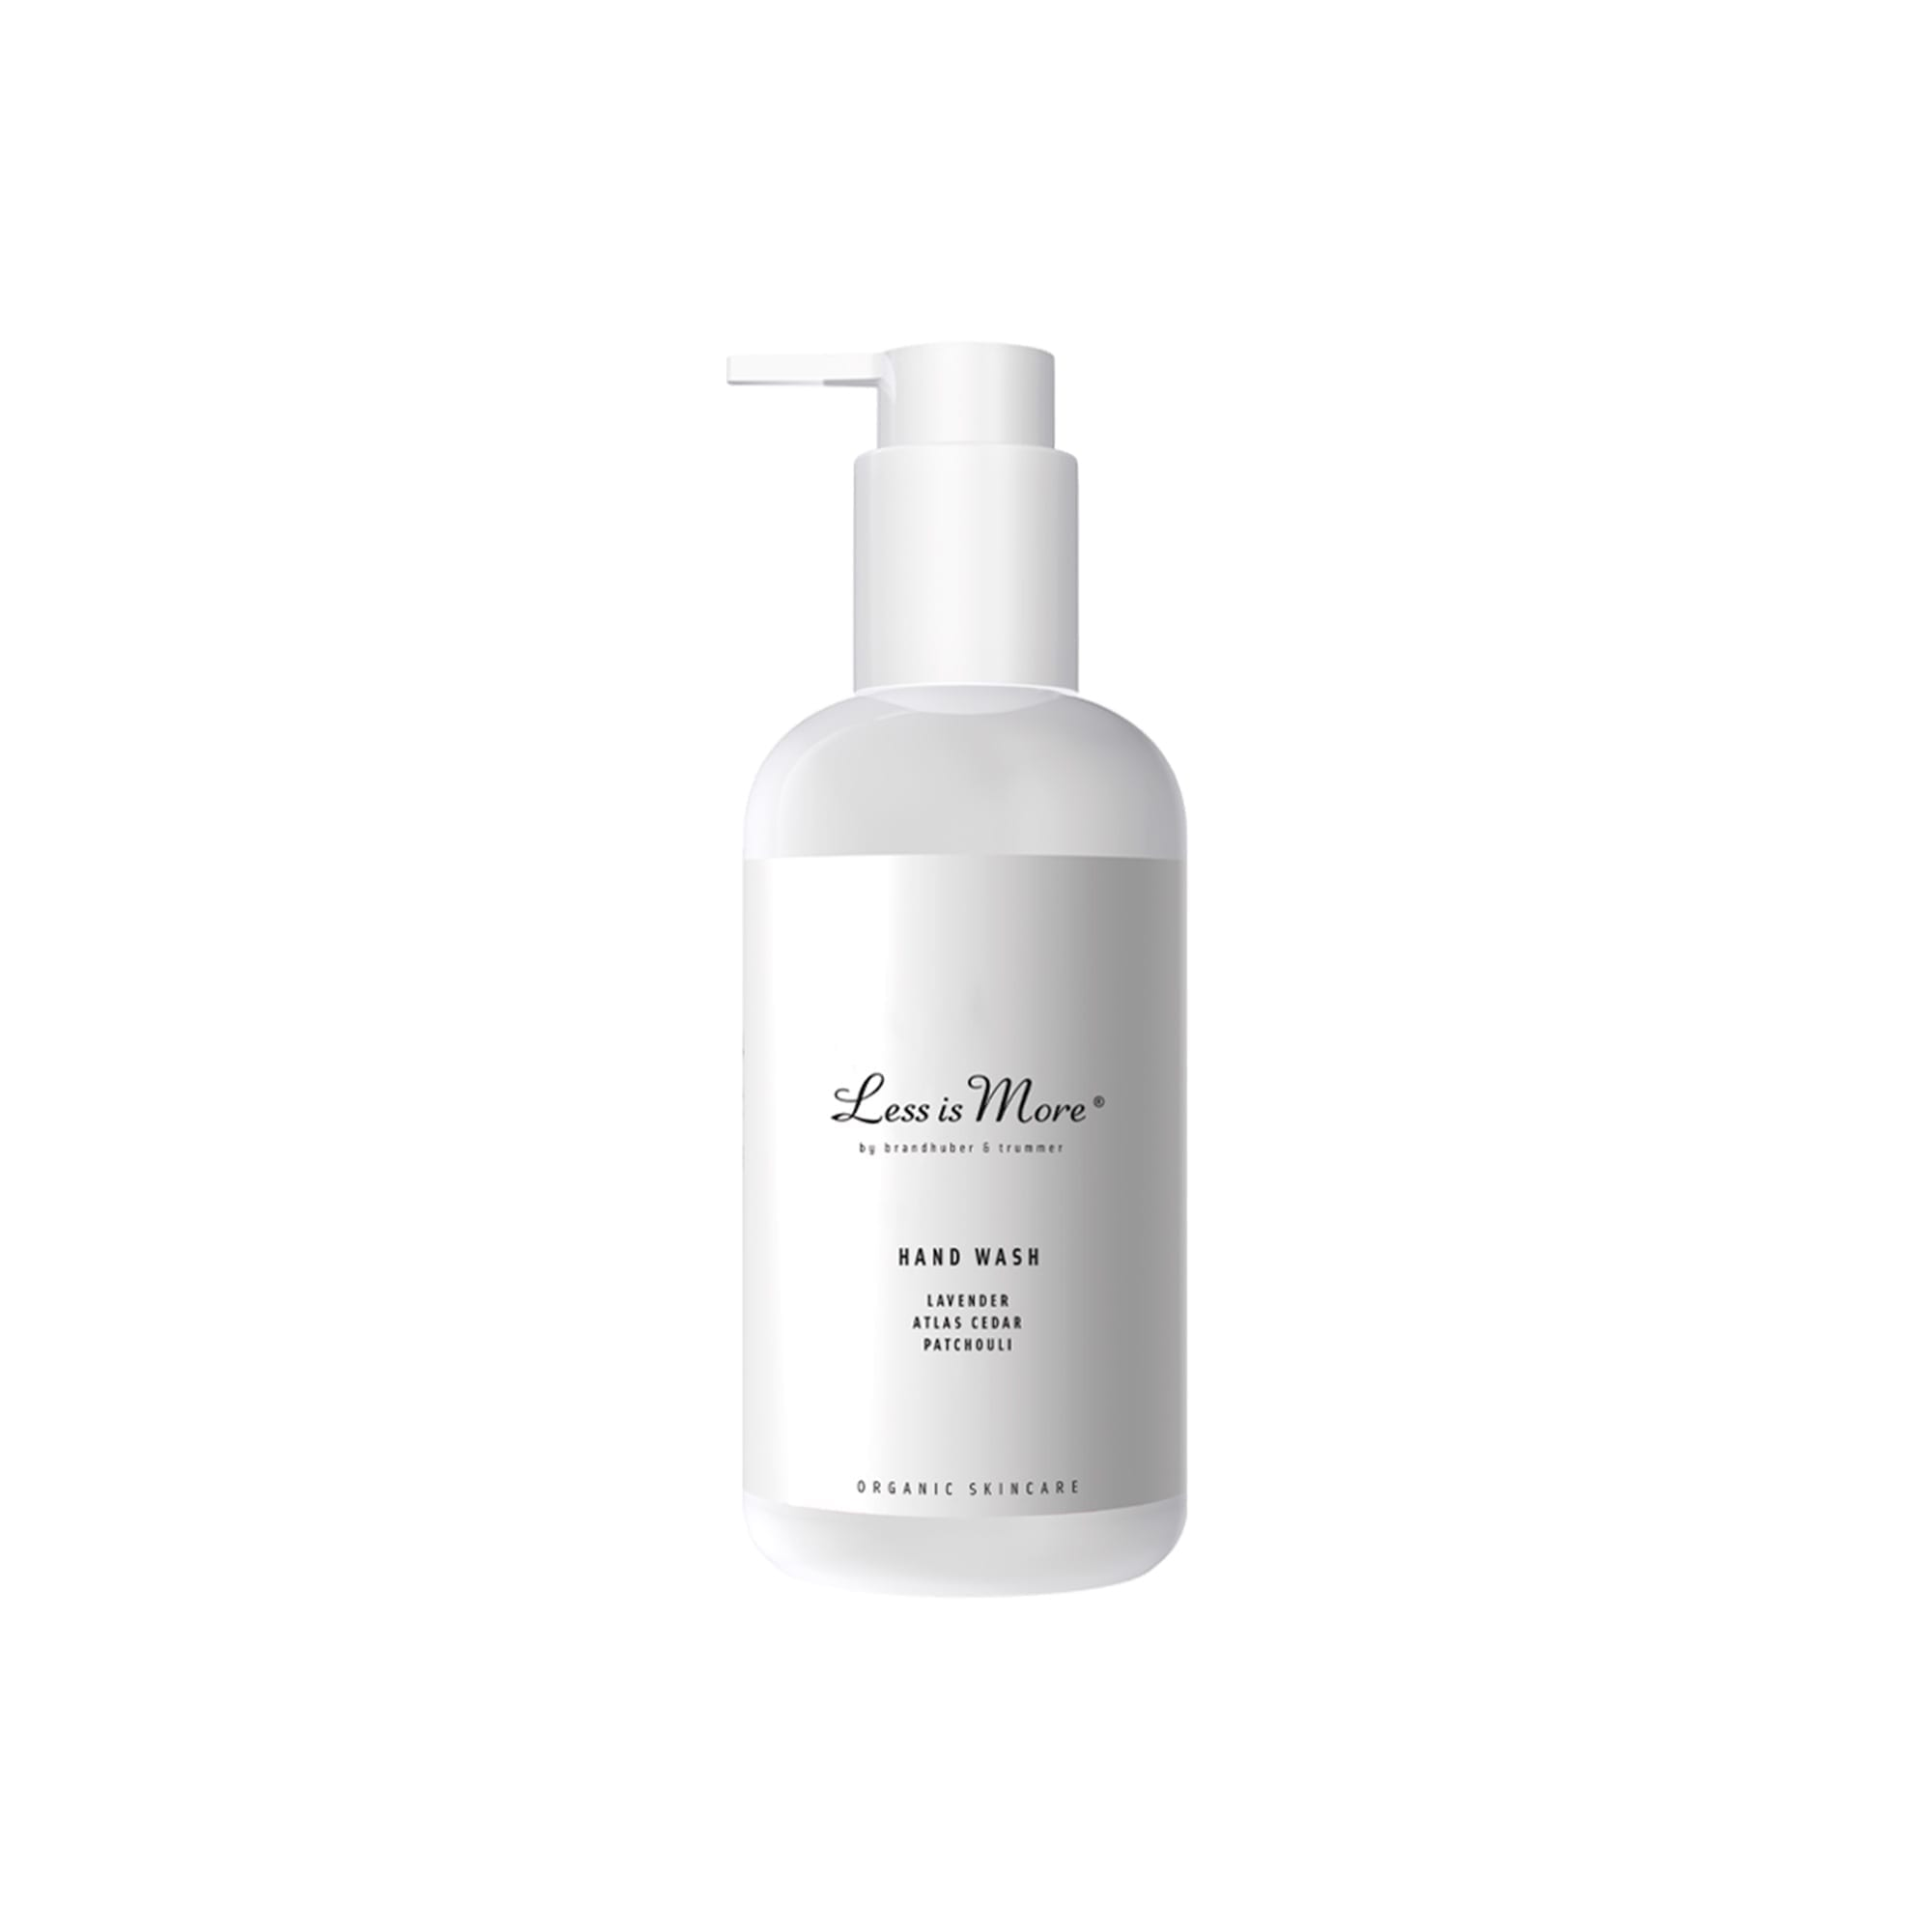 Less Is More - Hand Wash